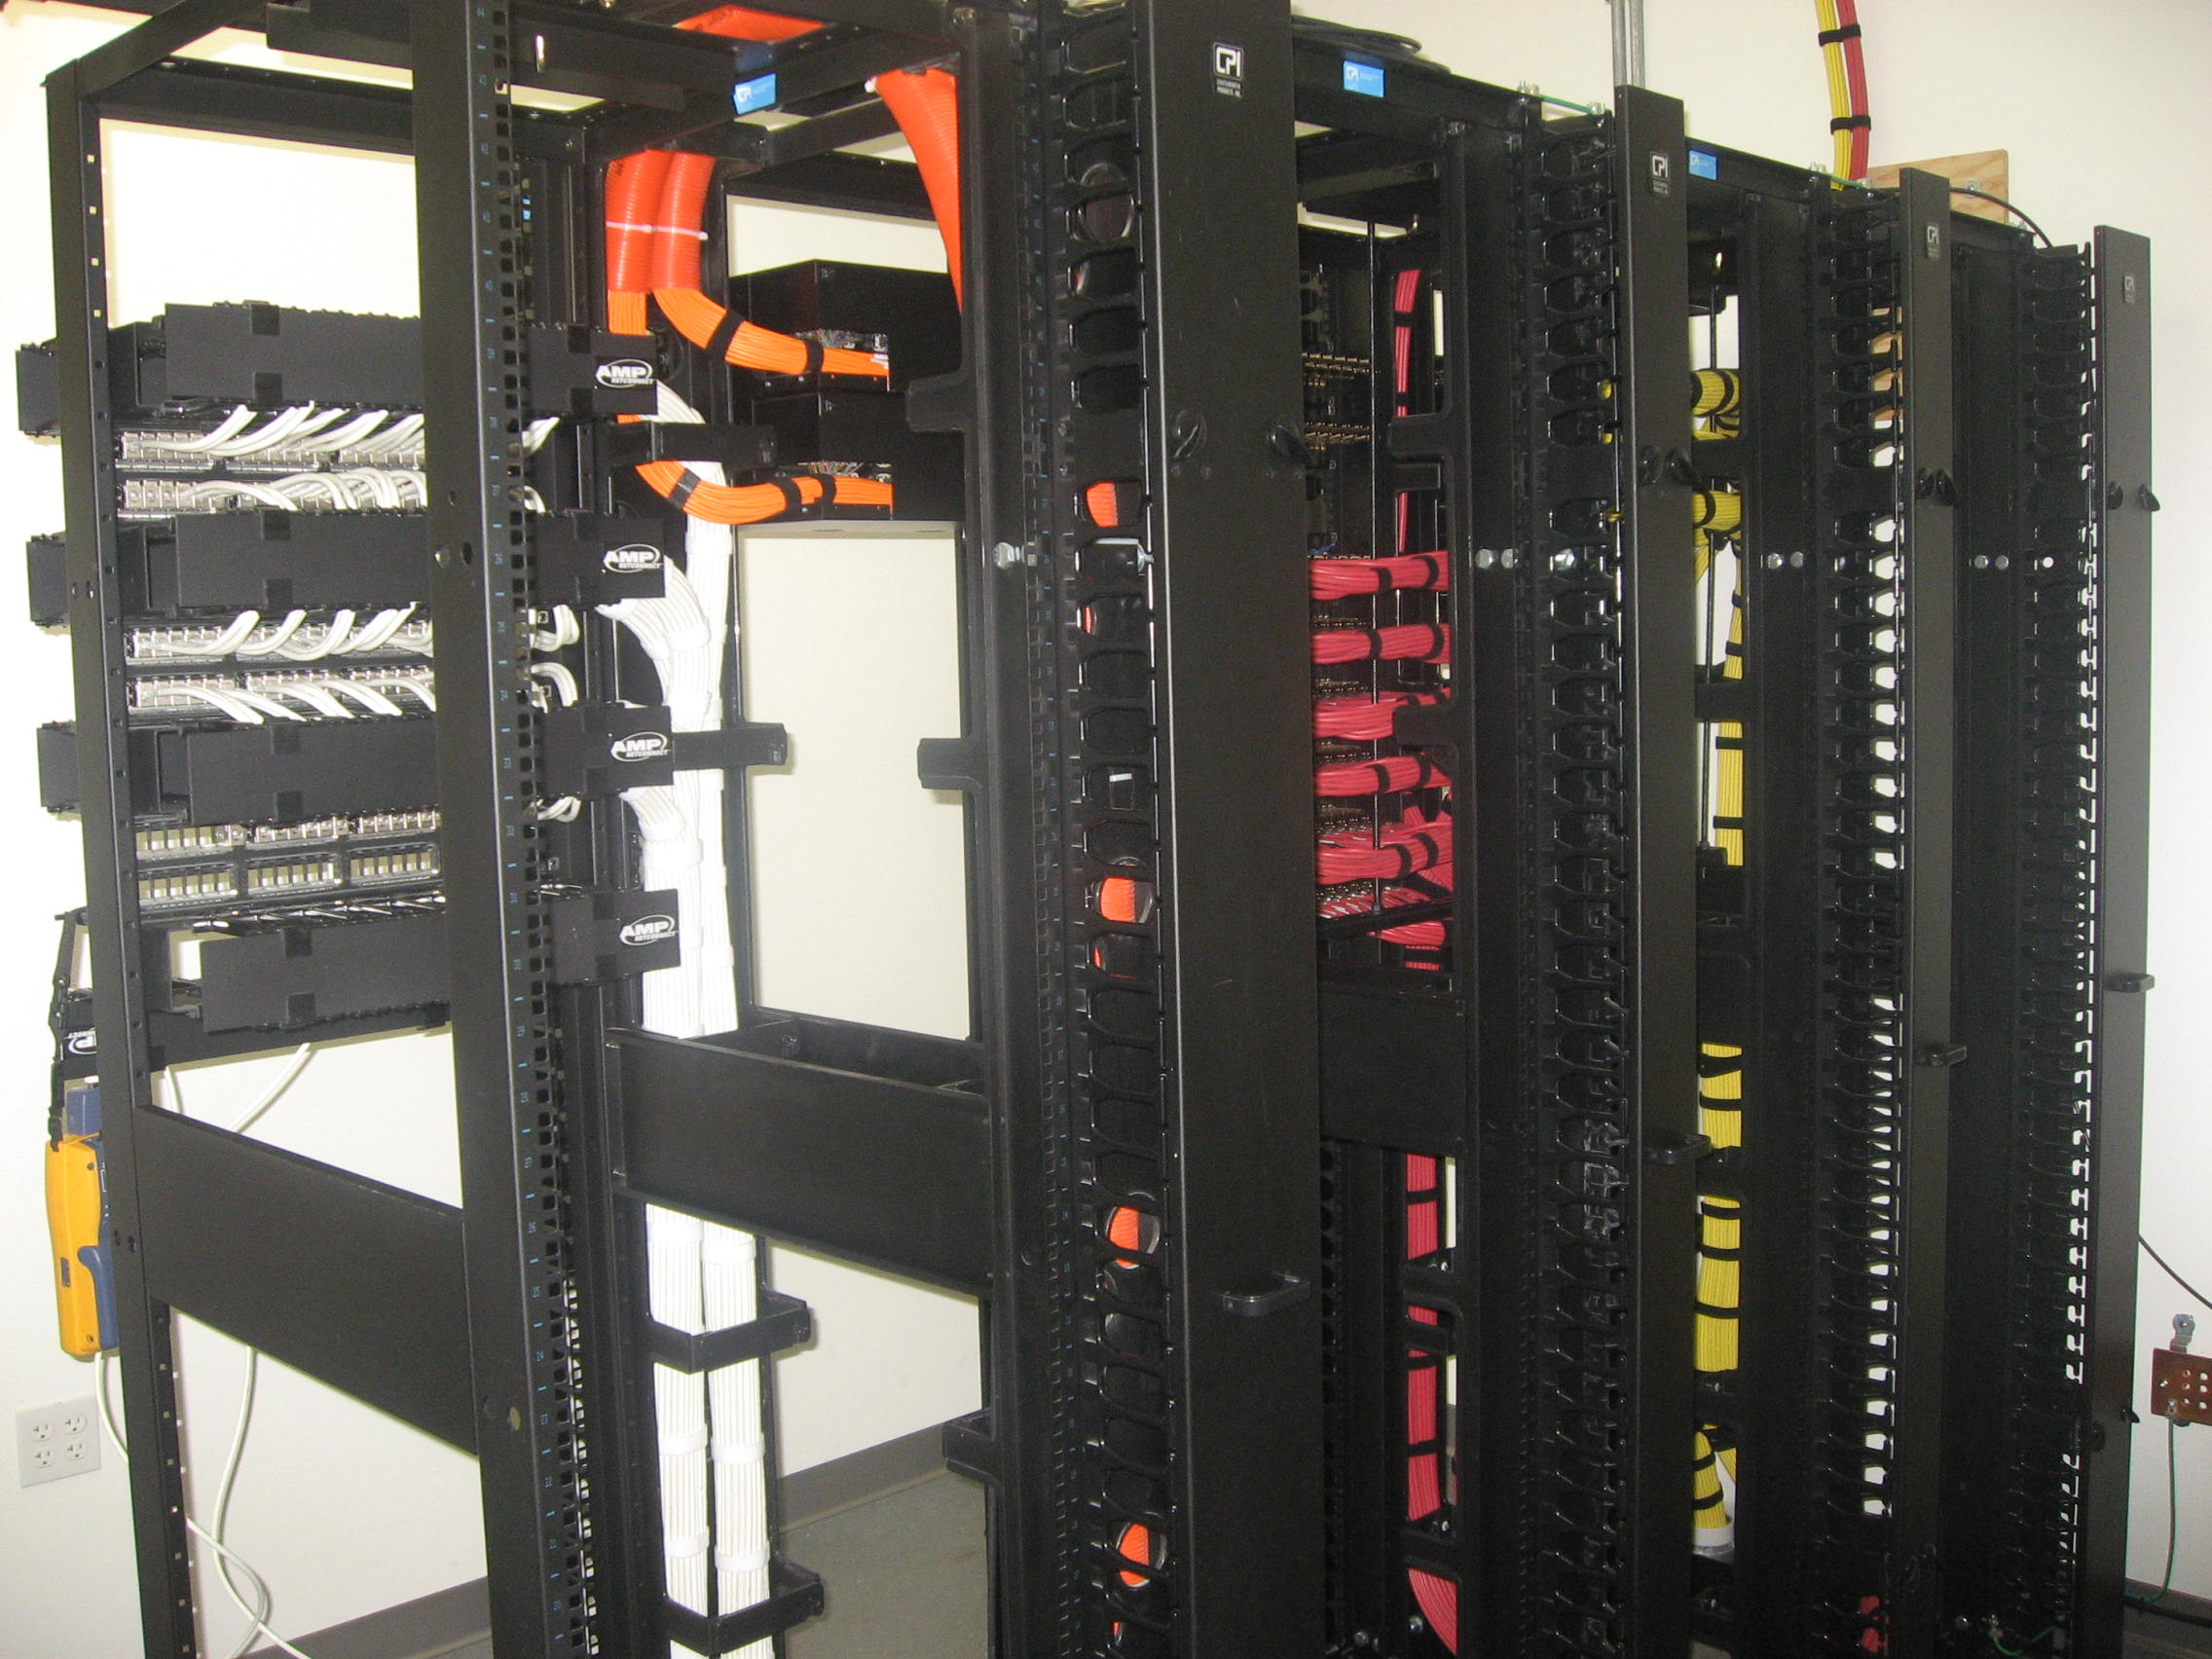 Full CAT 6 Ethernet Racks with Cable Management